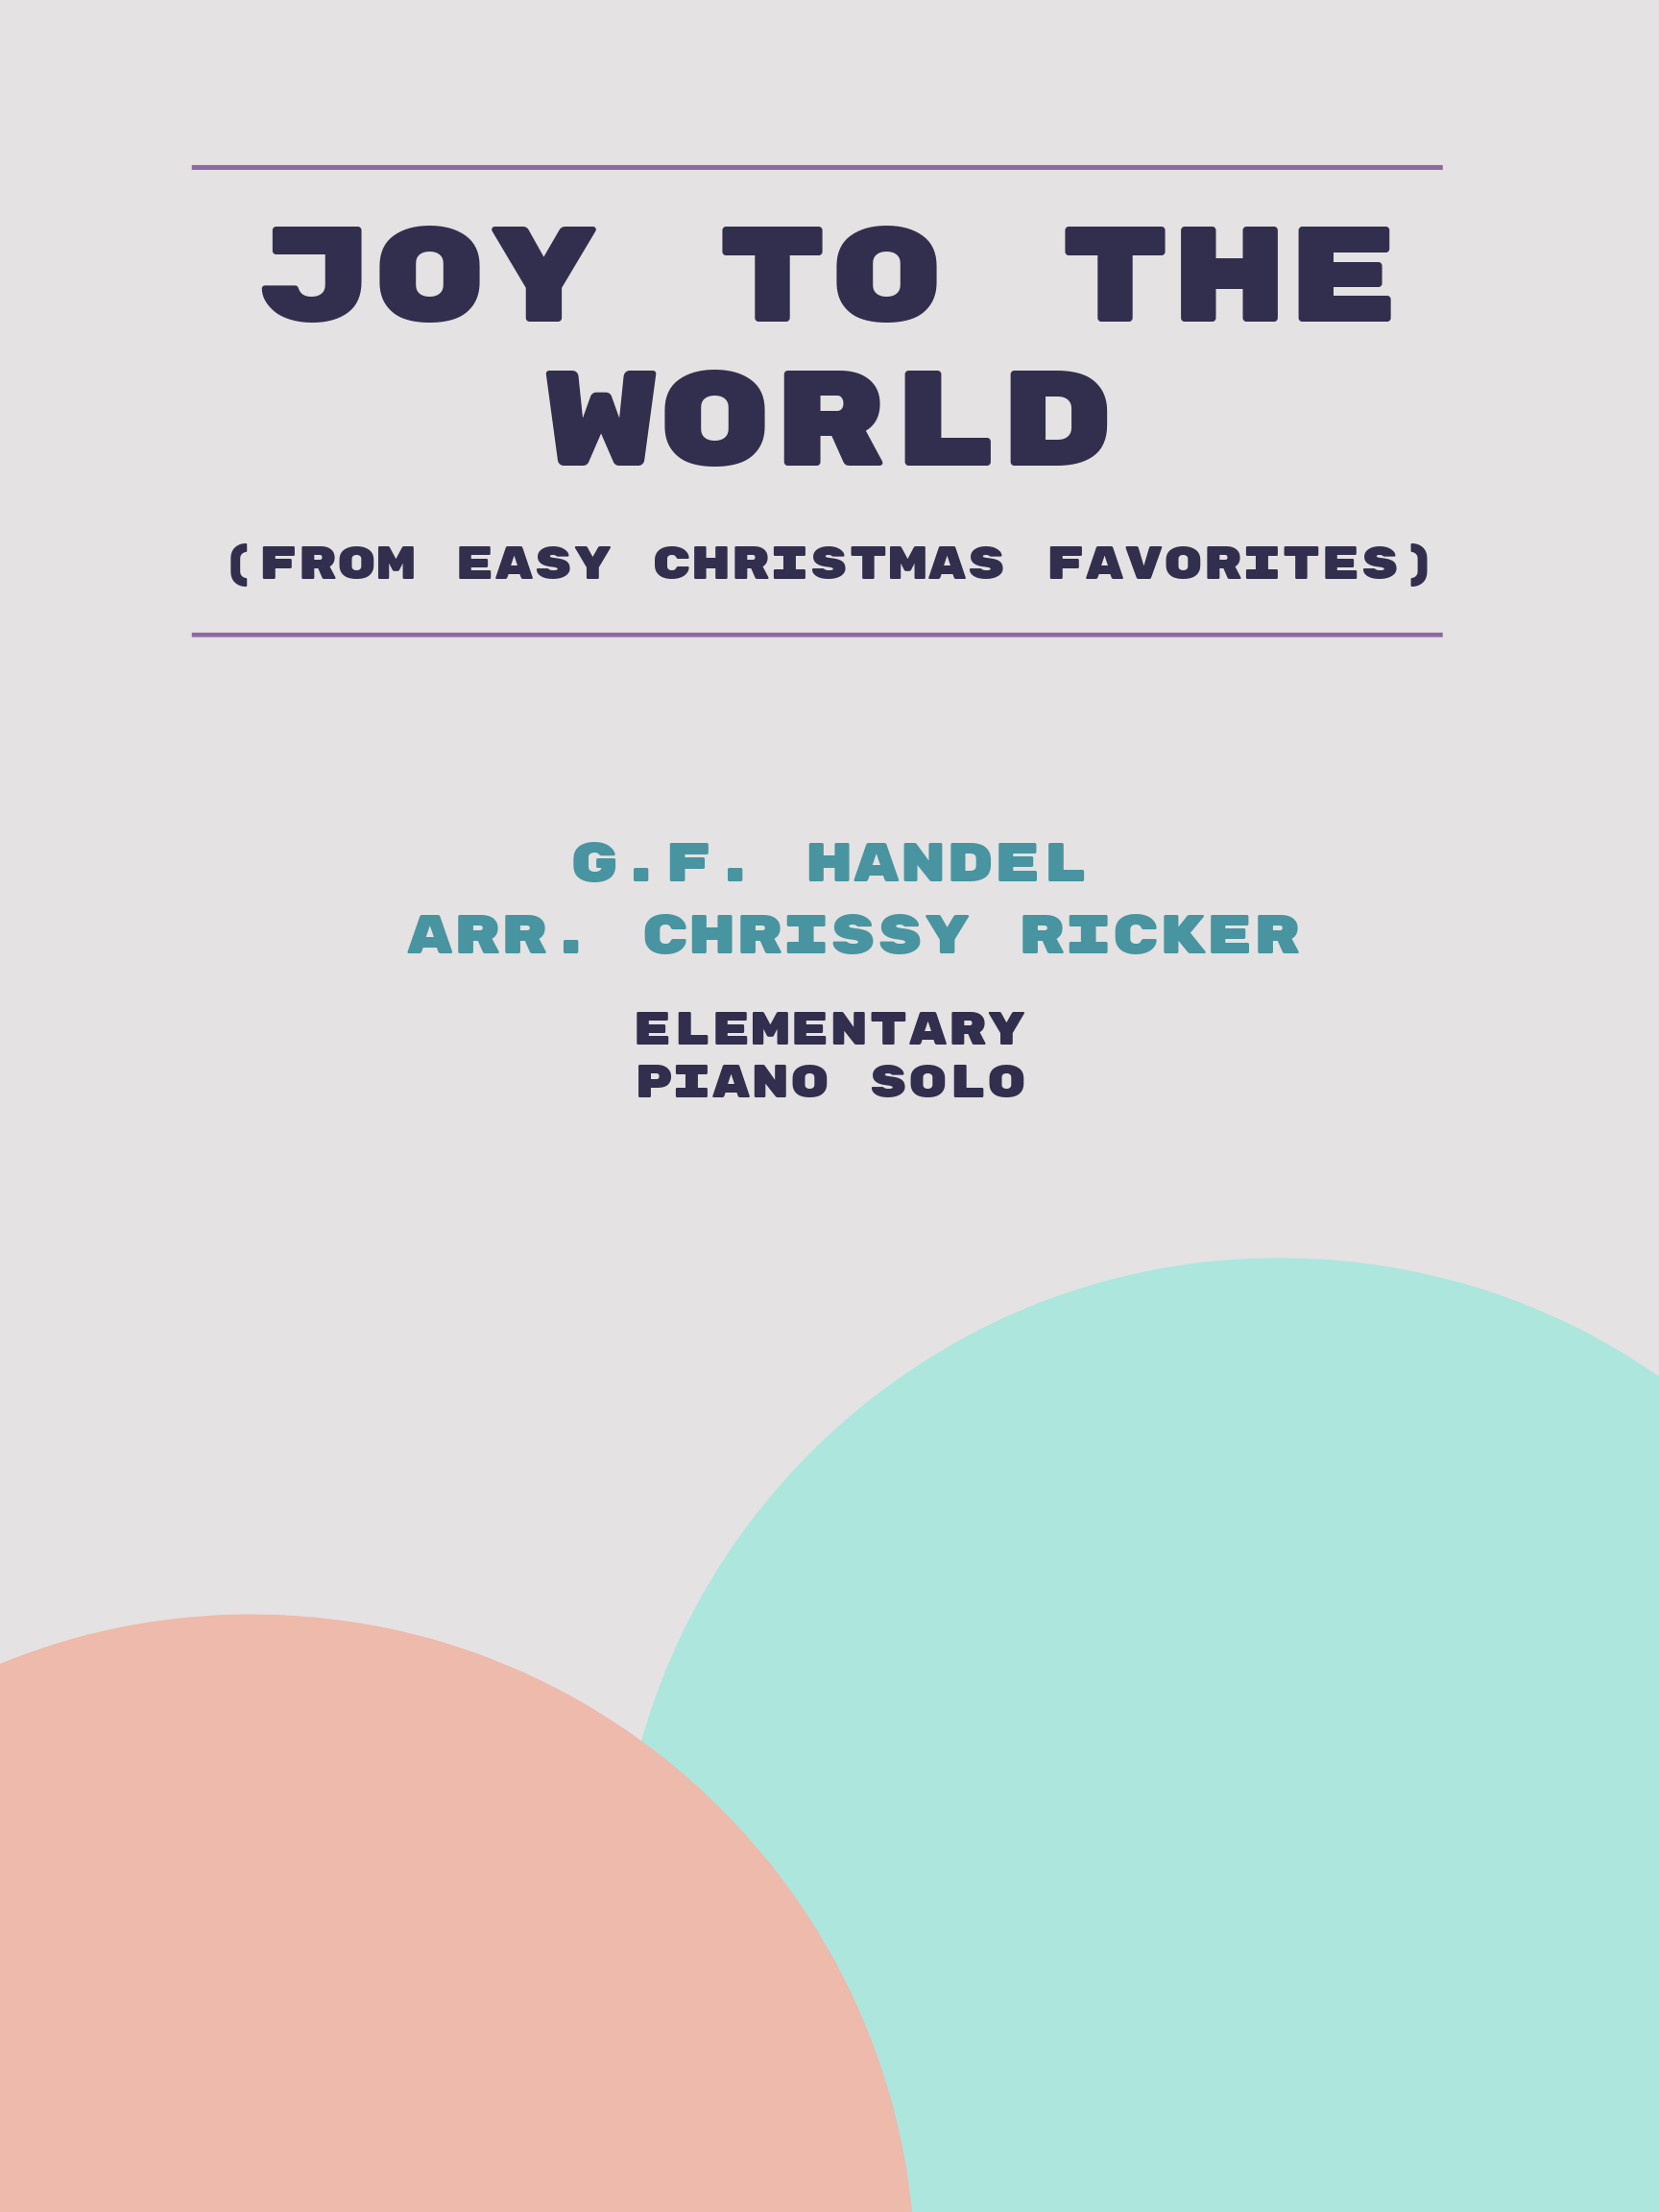 Joy to the World by G.F. Handel